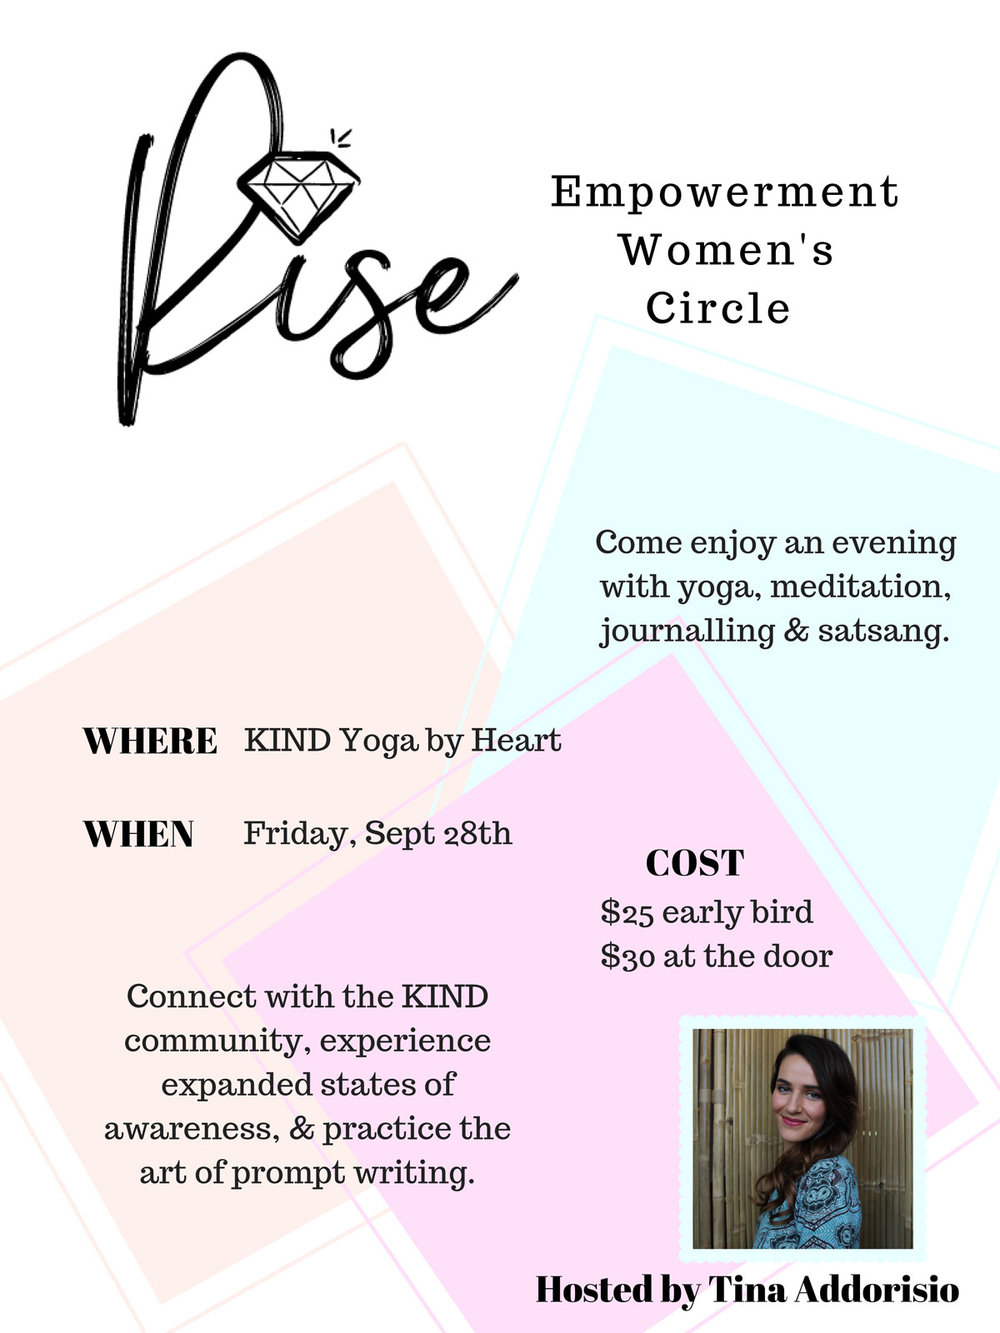 KIND-Rise-Empowerment-Poster.jpg